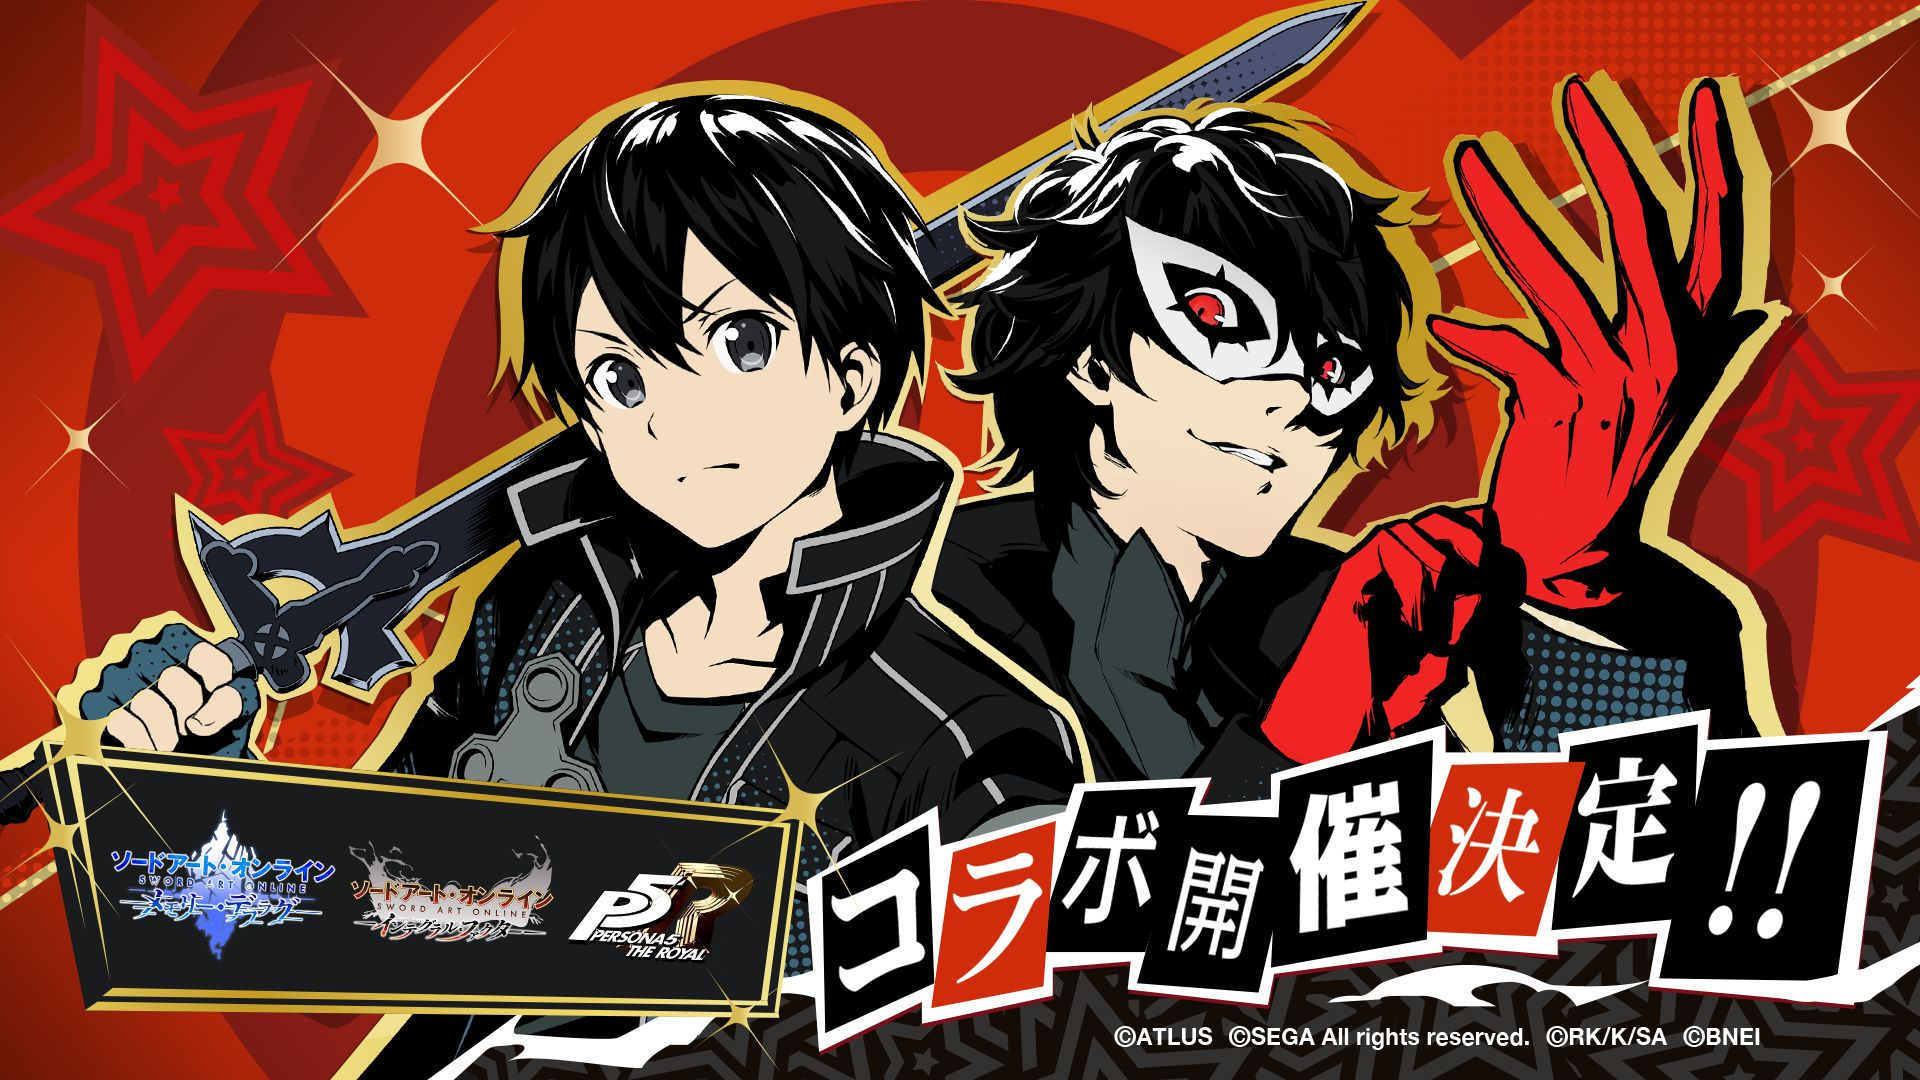 persona 5 and sword art online